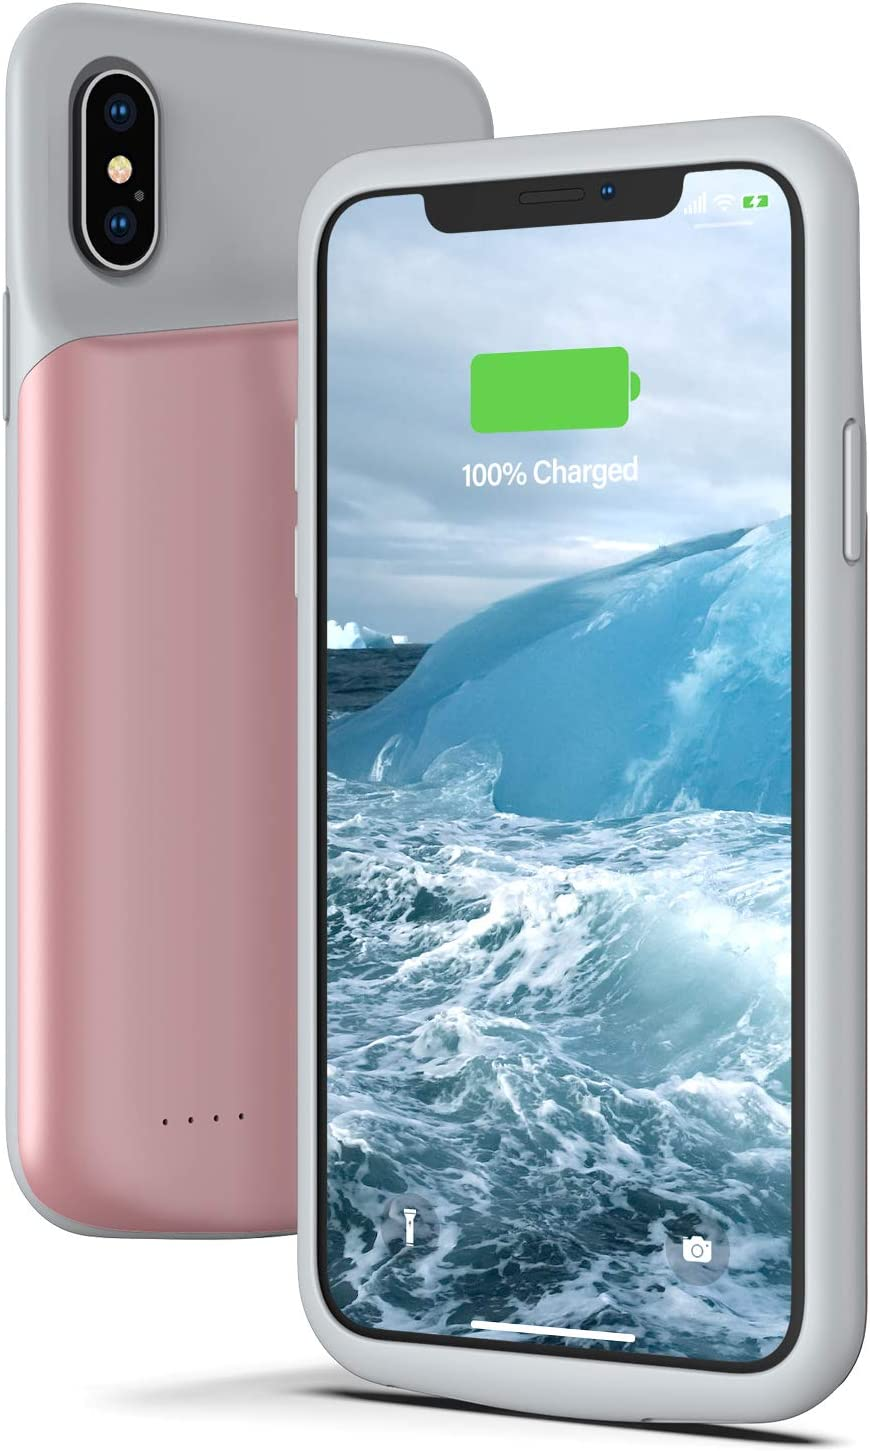 Lonlif Battery Case for iPhone X/XS/10, 4000mAh Ultra Slim Rechargeable Protective Charging Case, Extended Portable Battery Pack Charger Case Compatible with iPhone X/XS/10 (Rose Gold)